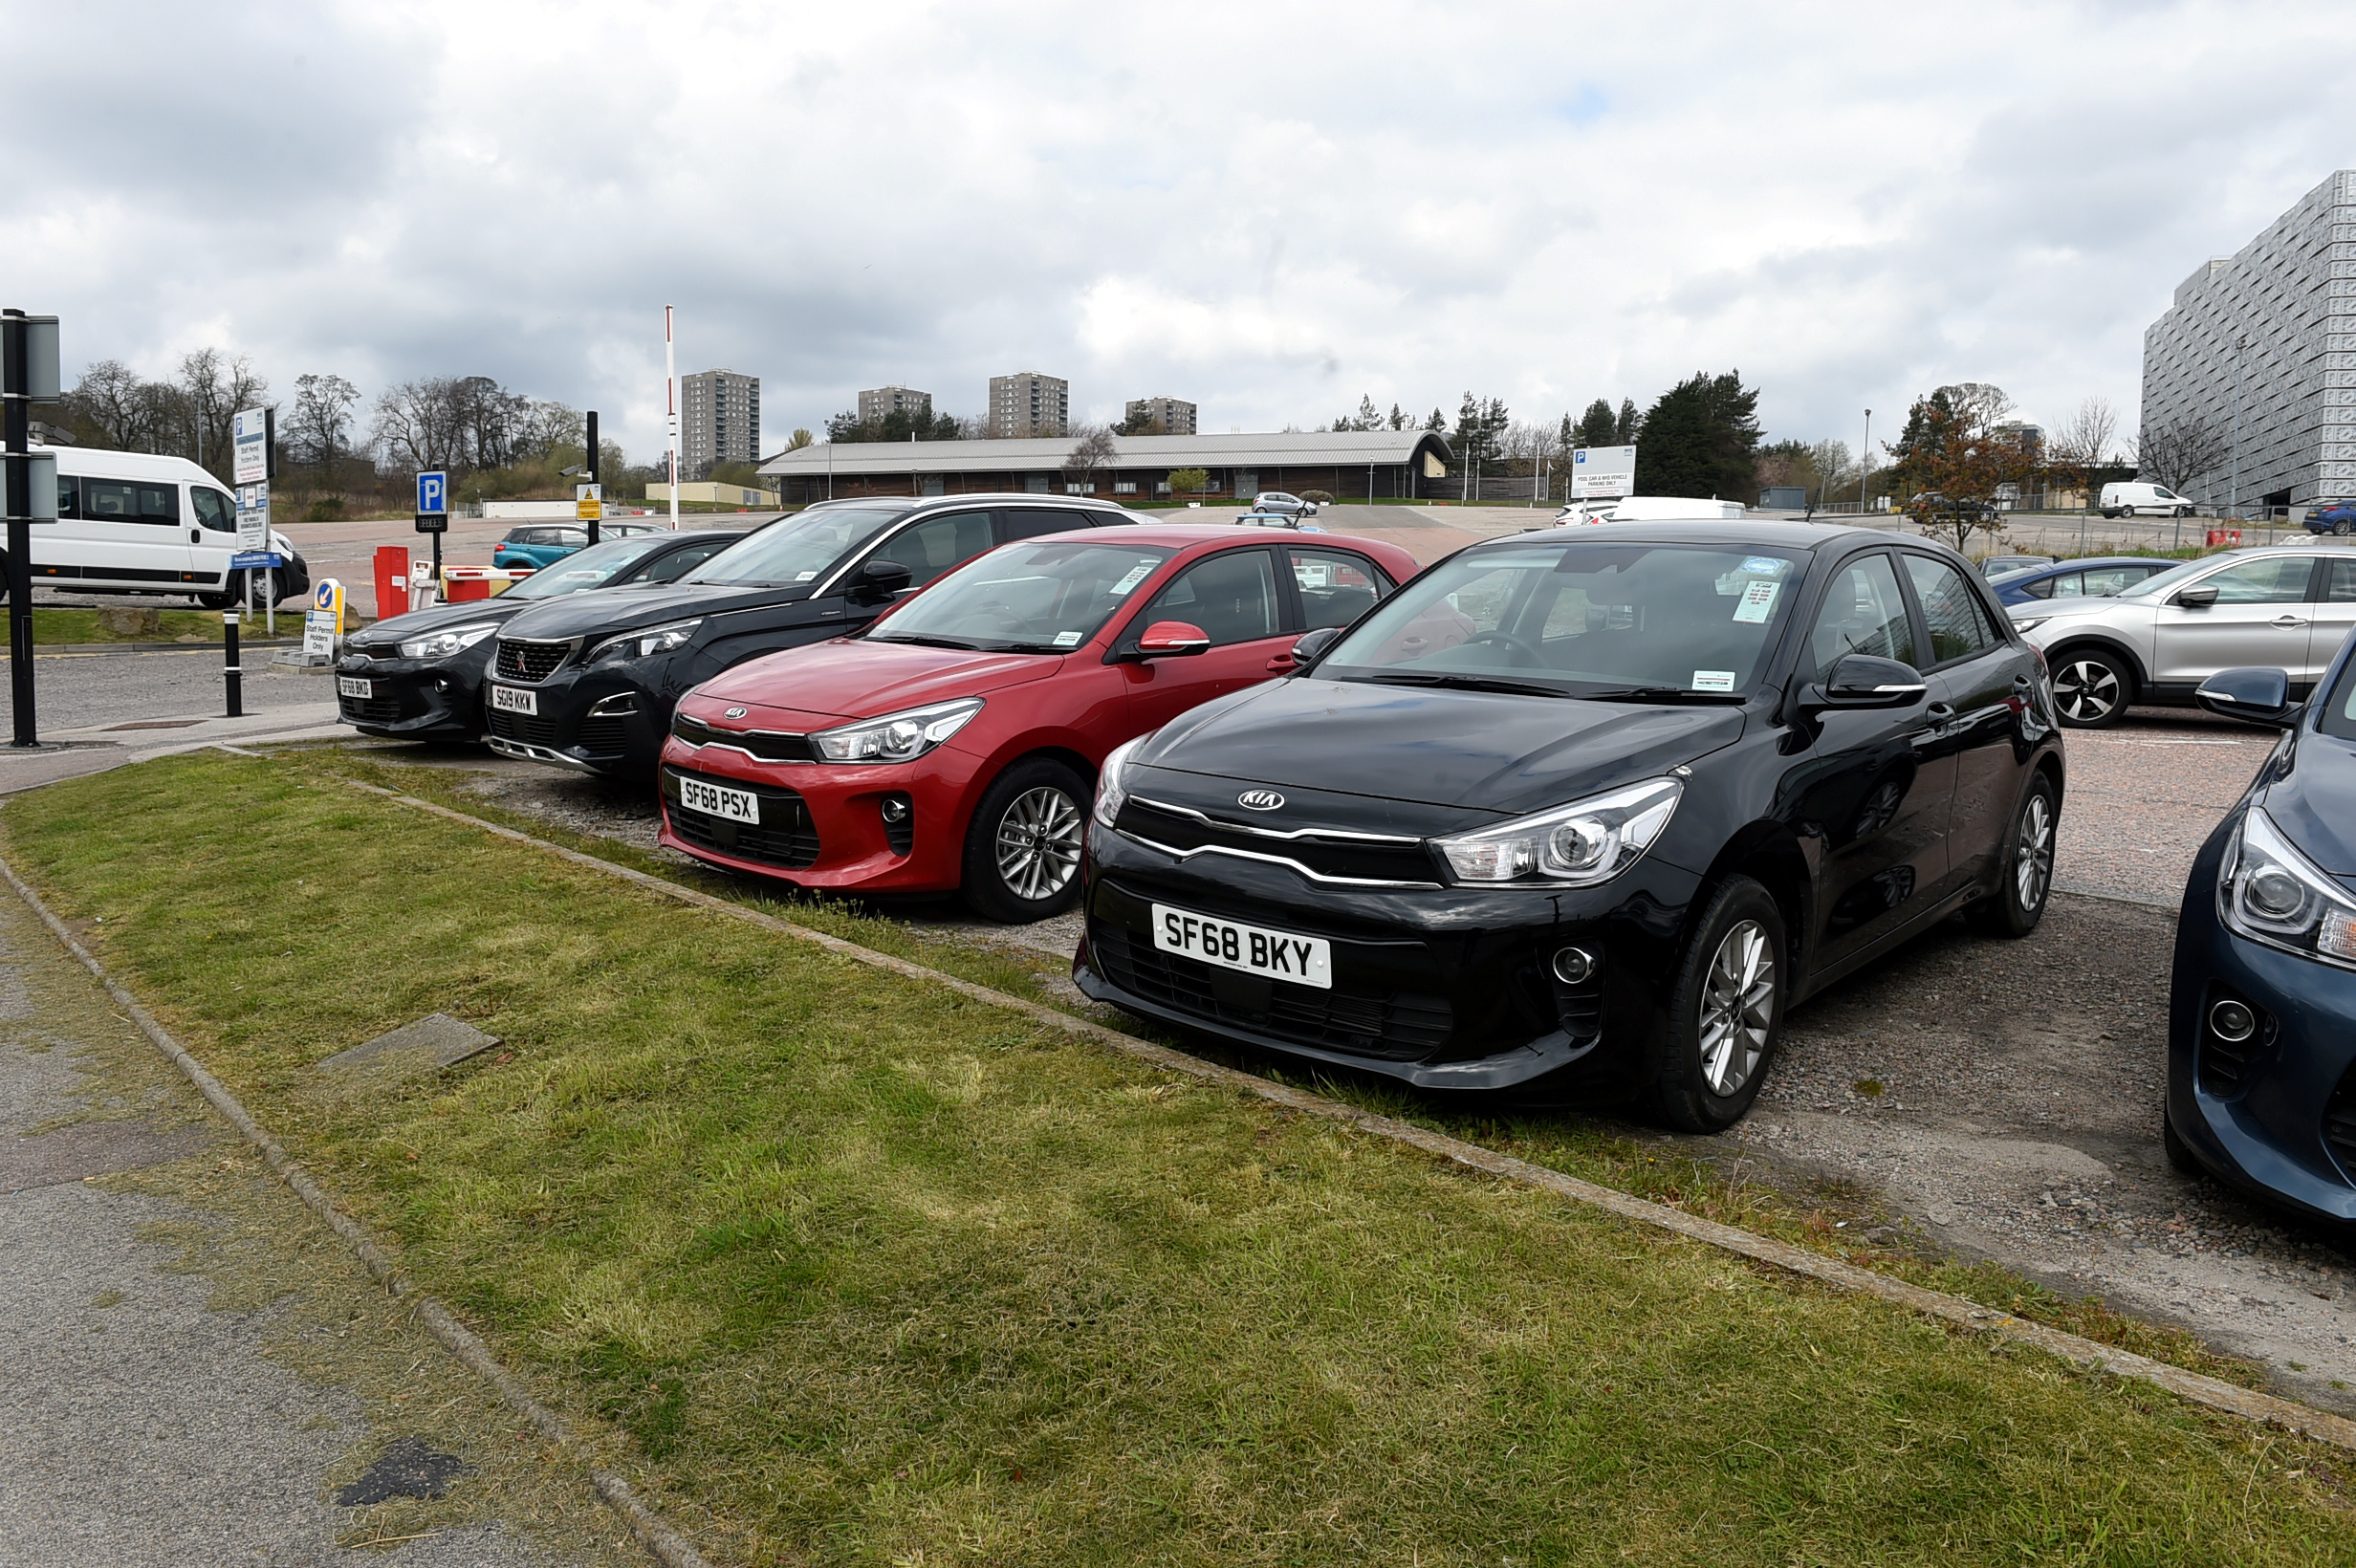 A whistleblower has claimed that hundreds of pool cars have been leased but have been left unused at ARI